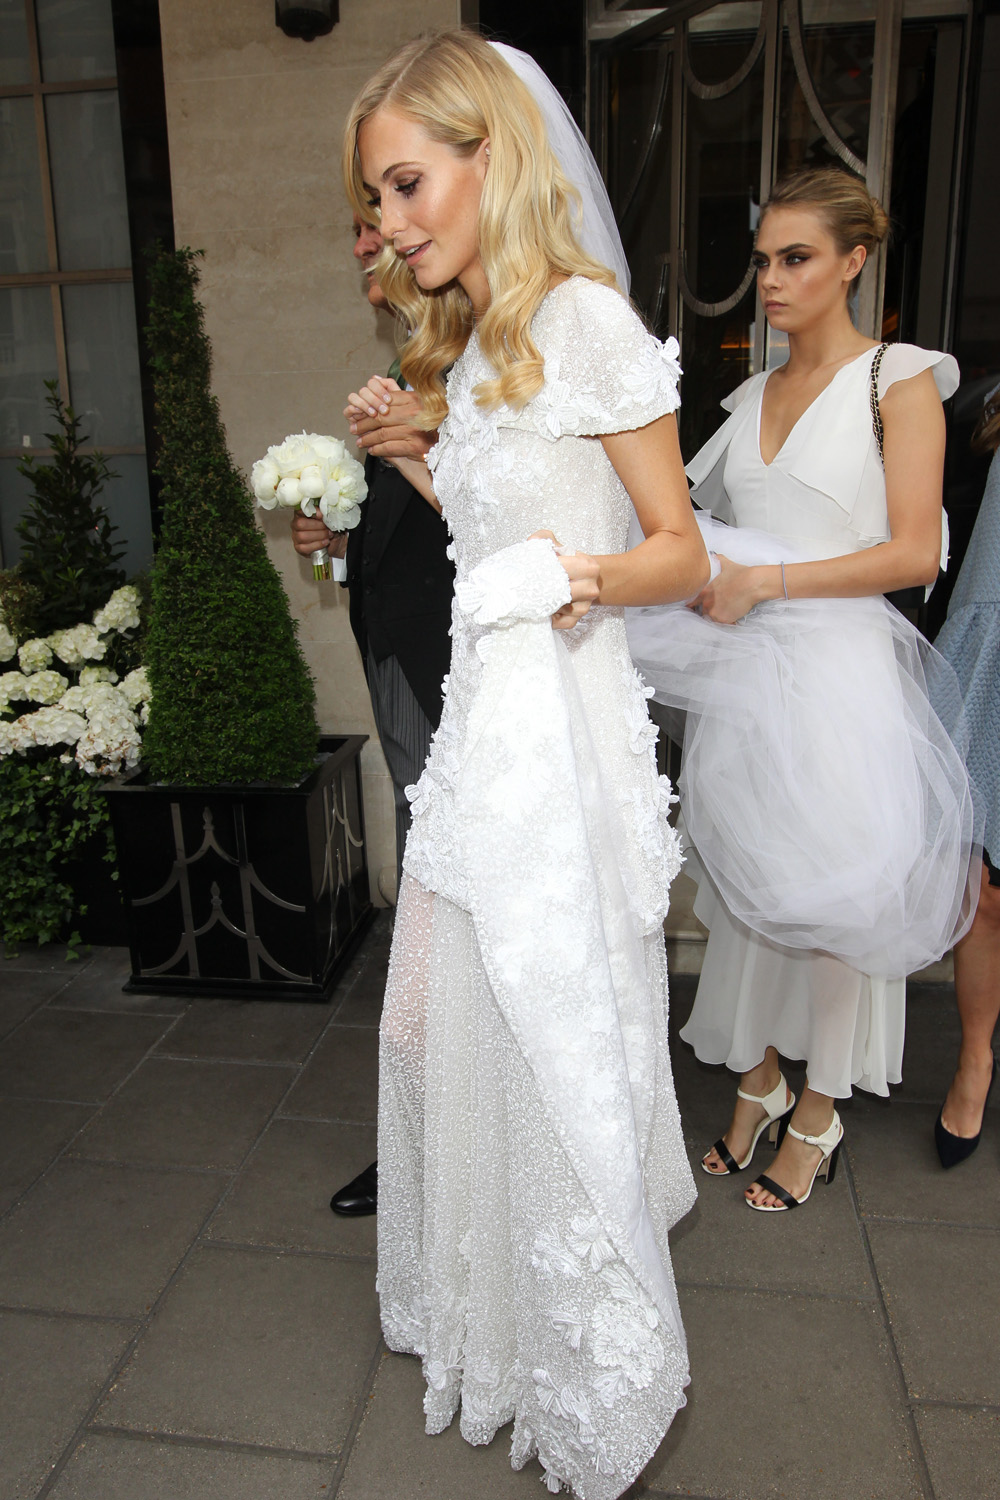 Best Chanel Wedding Dresses These Are The Celebrity Chanel Brides